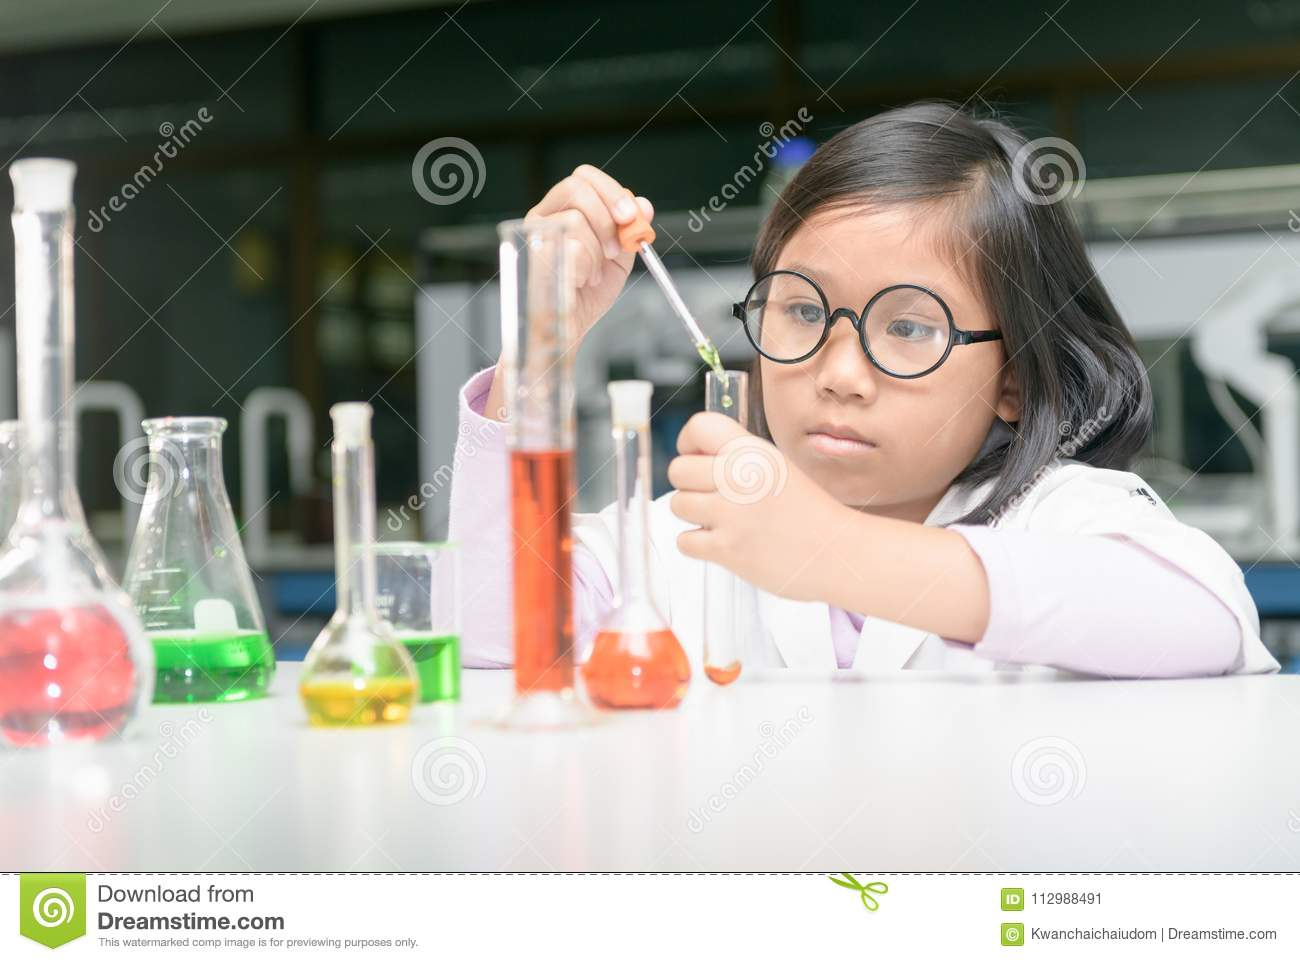 Girl making experiment with test tube